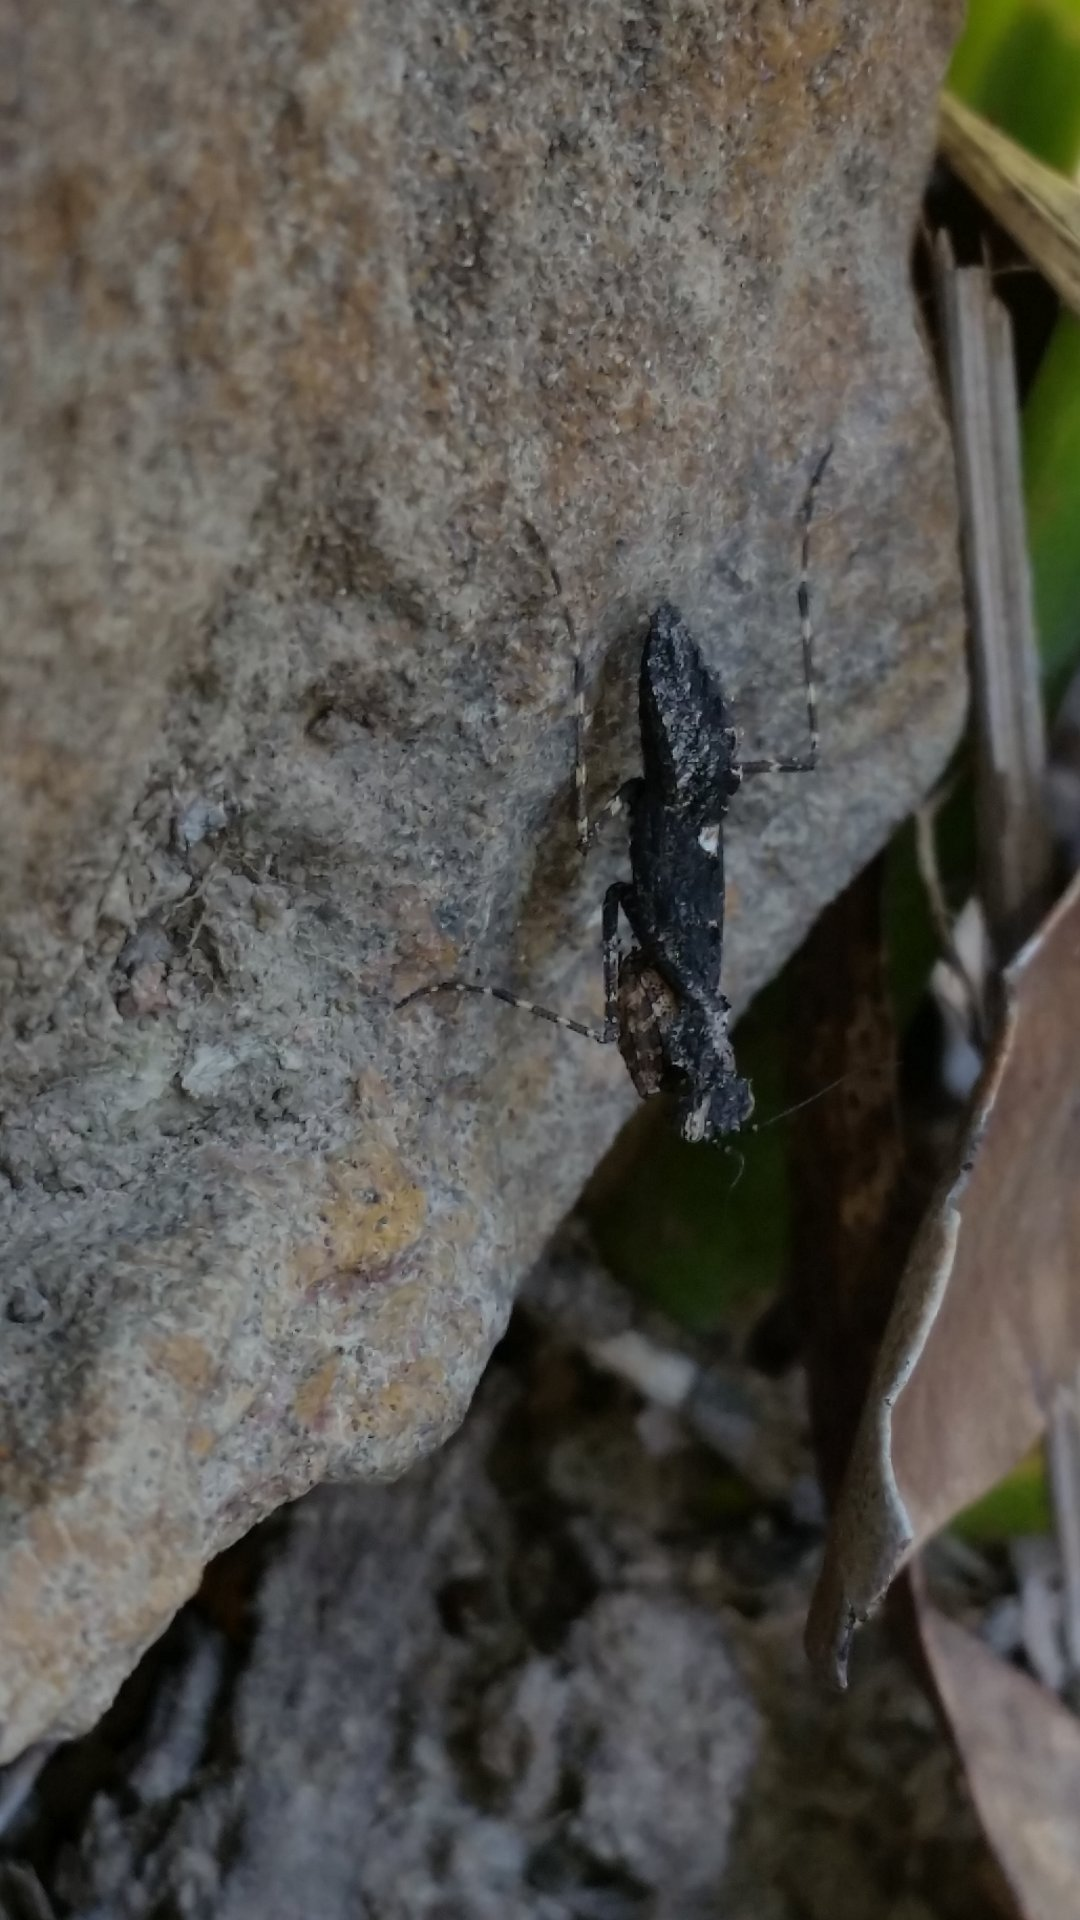 Rock mantis